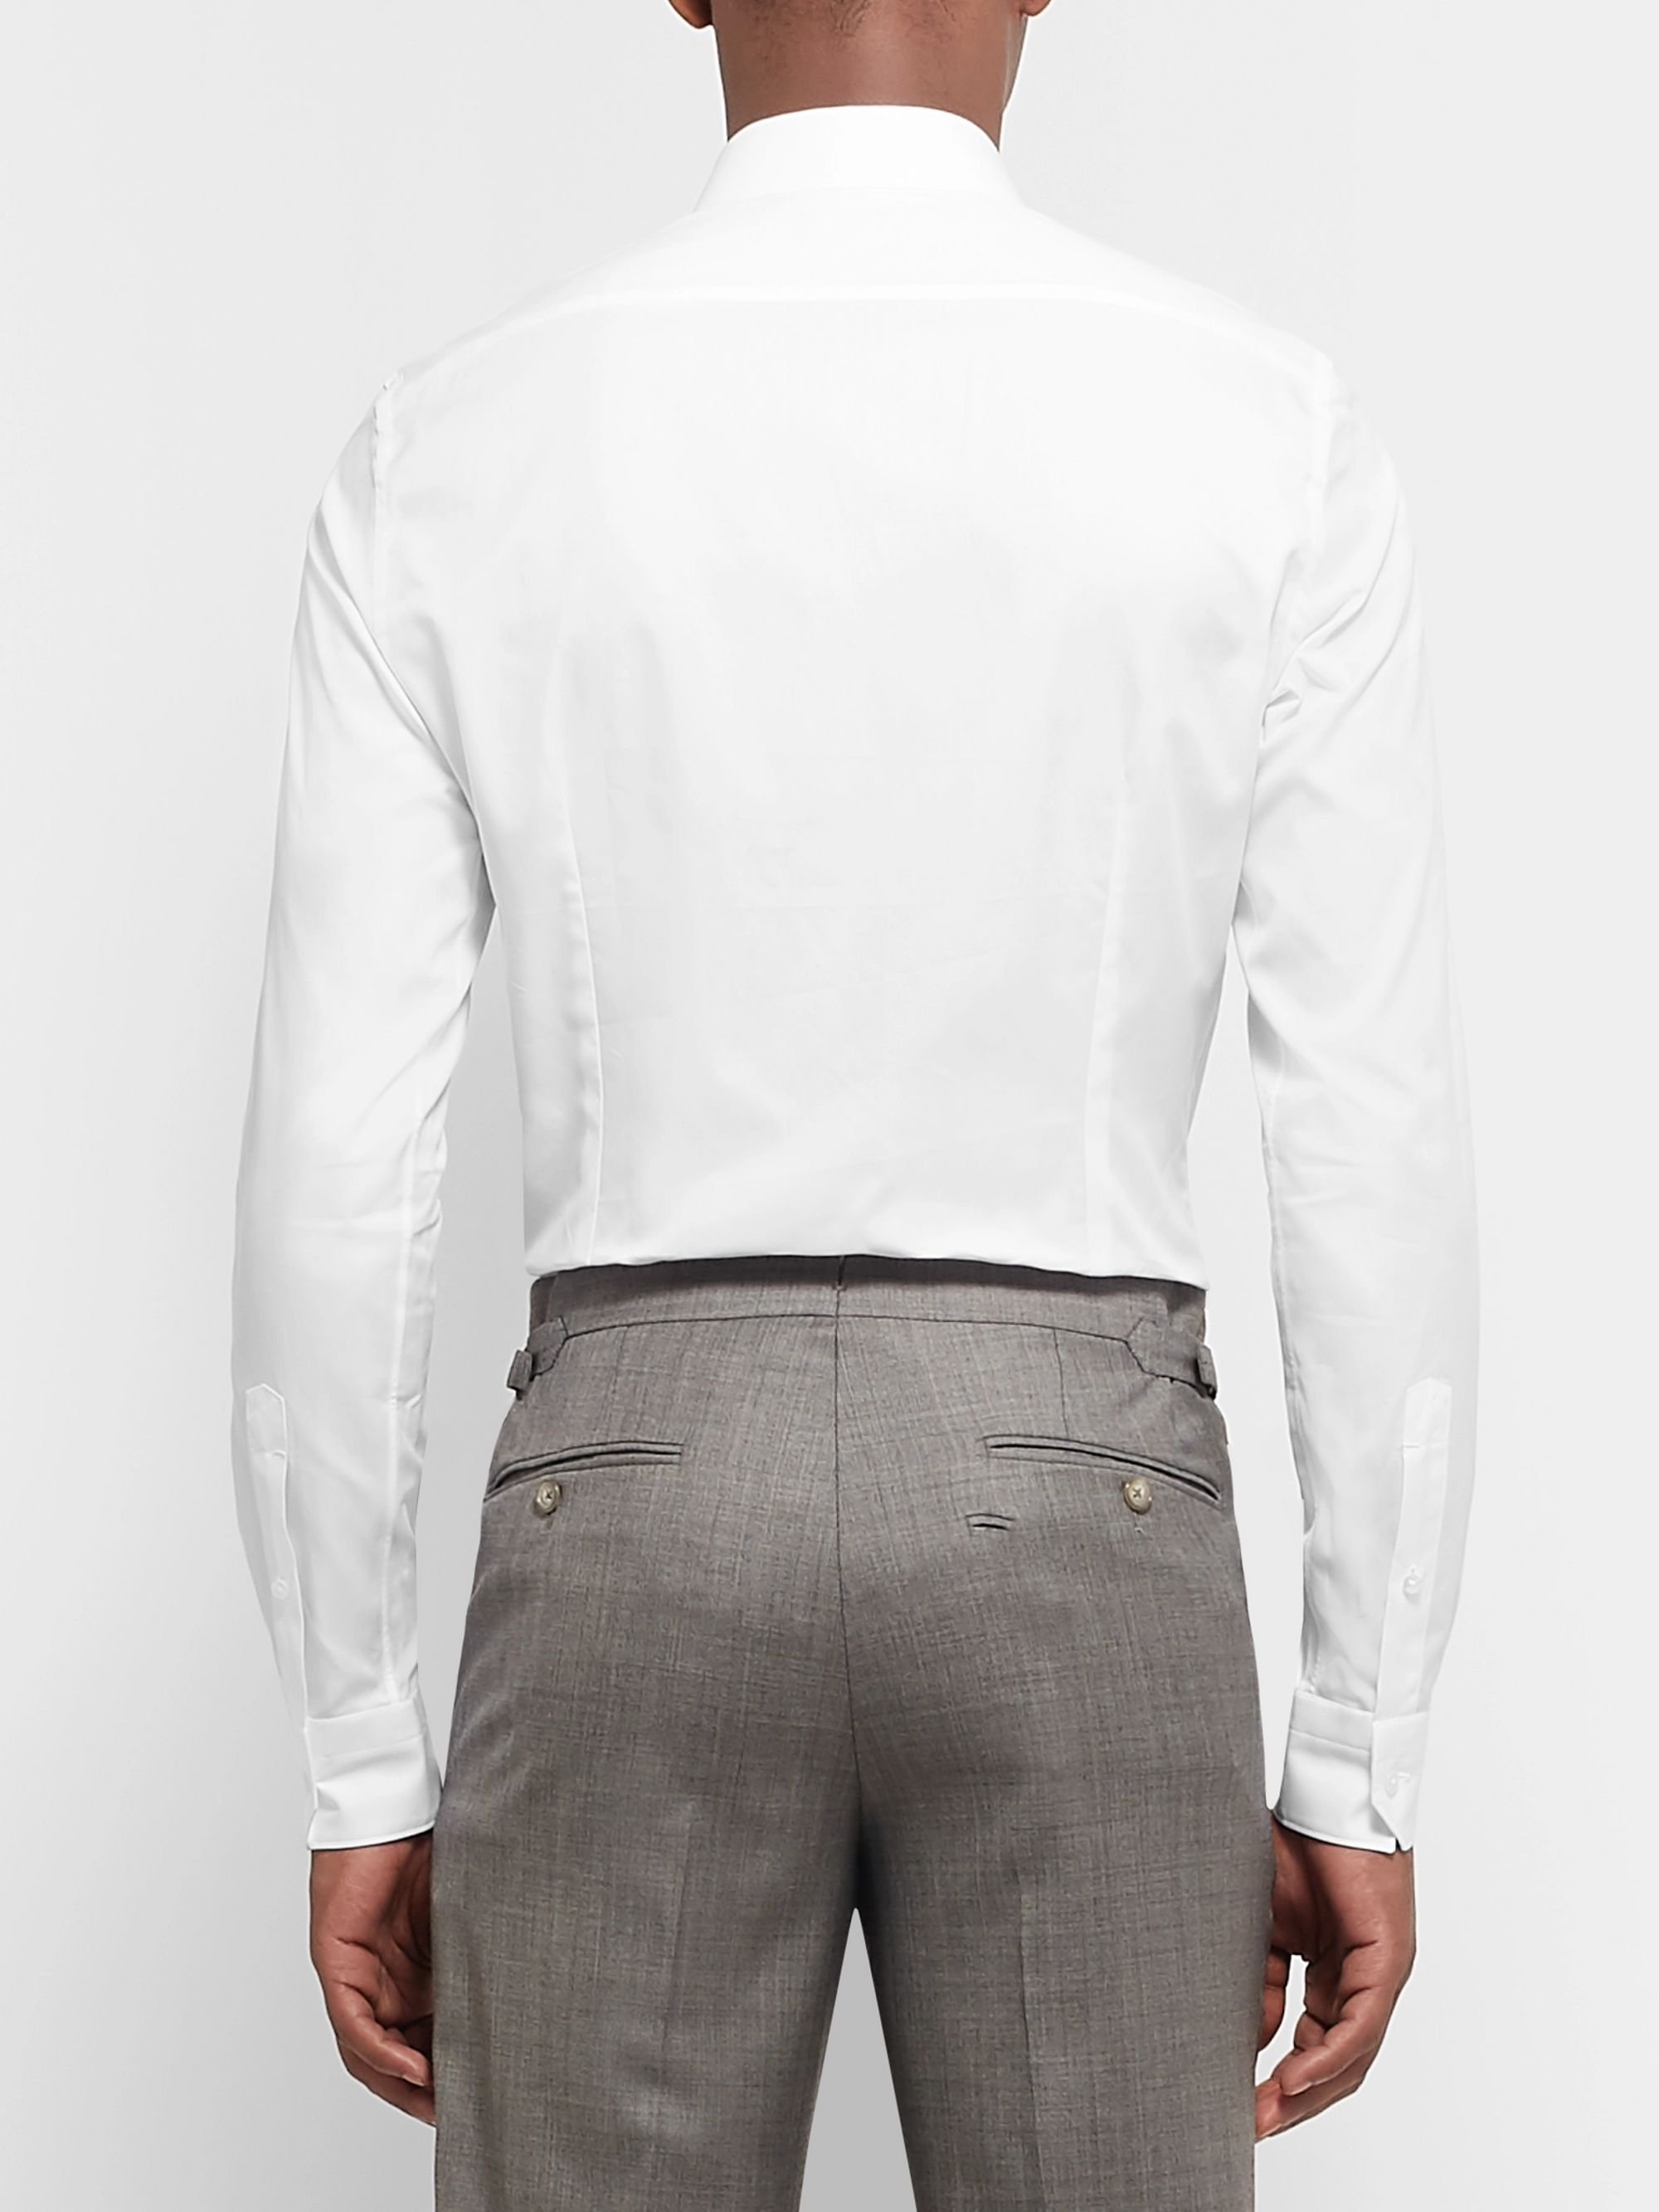 Ermenegildo Zegna White Slim-Fit Trofeo Cotton-Twill Shirt